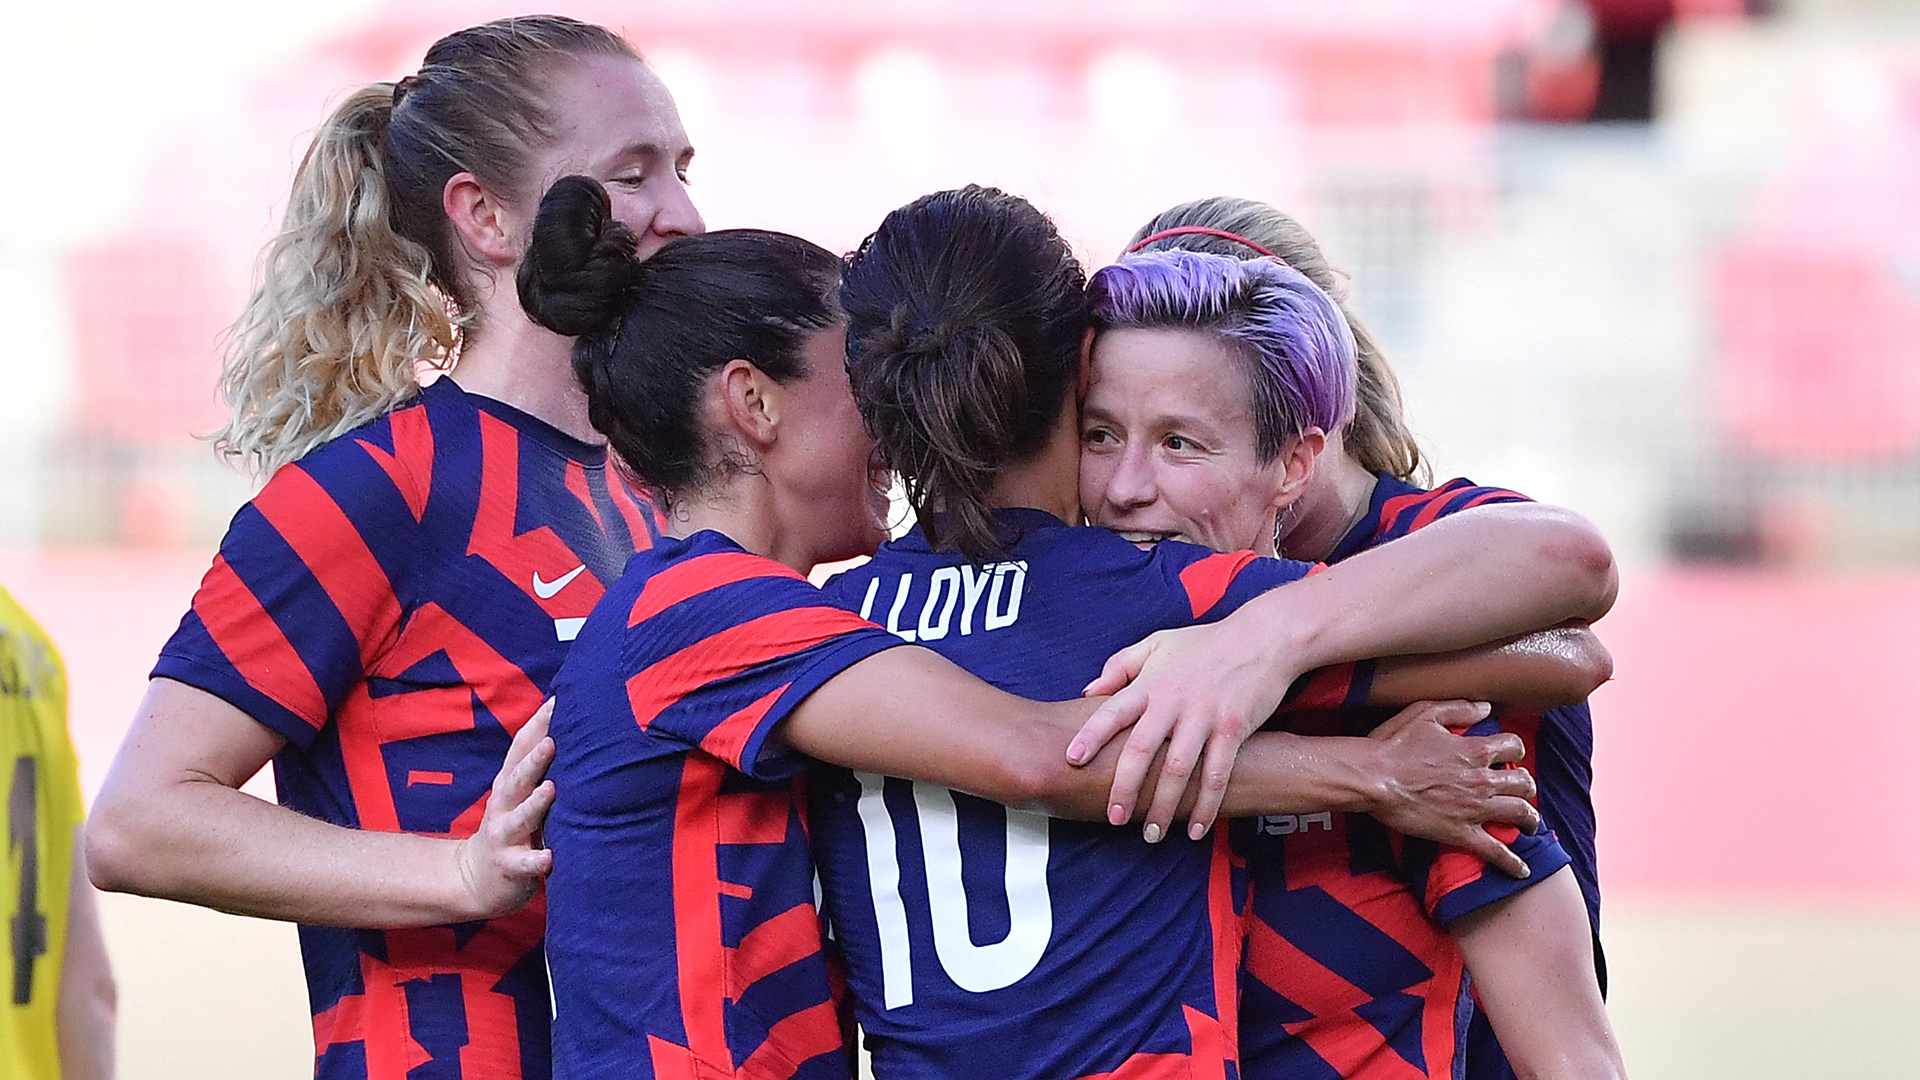 USWNT win Olympic bronze medal after thrilling 4-3 victory over Australia